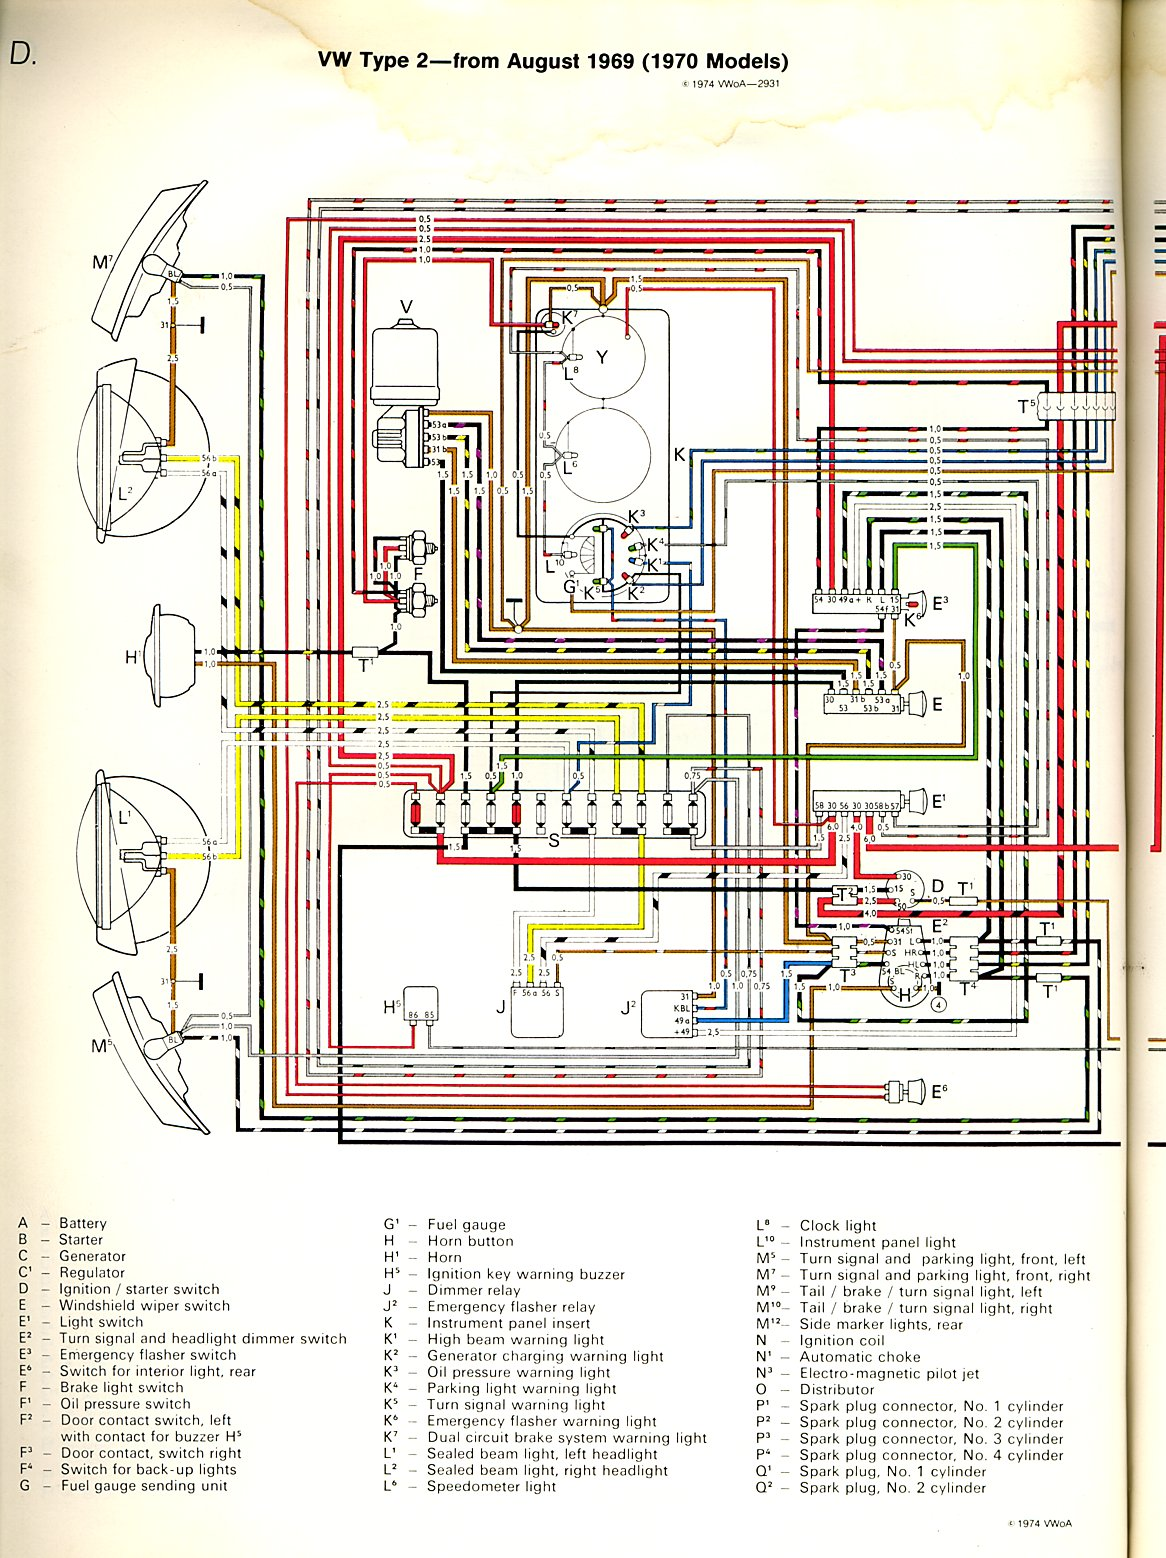 baybus_70a thesamba com type 2 wiring diagrams 1968 vw bug headlight wiring diagram at soozxer.org